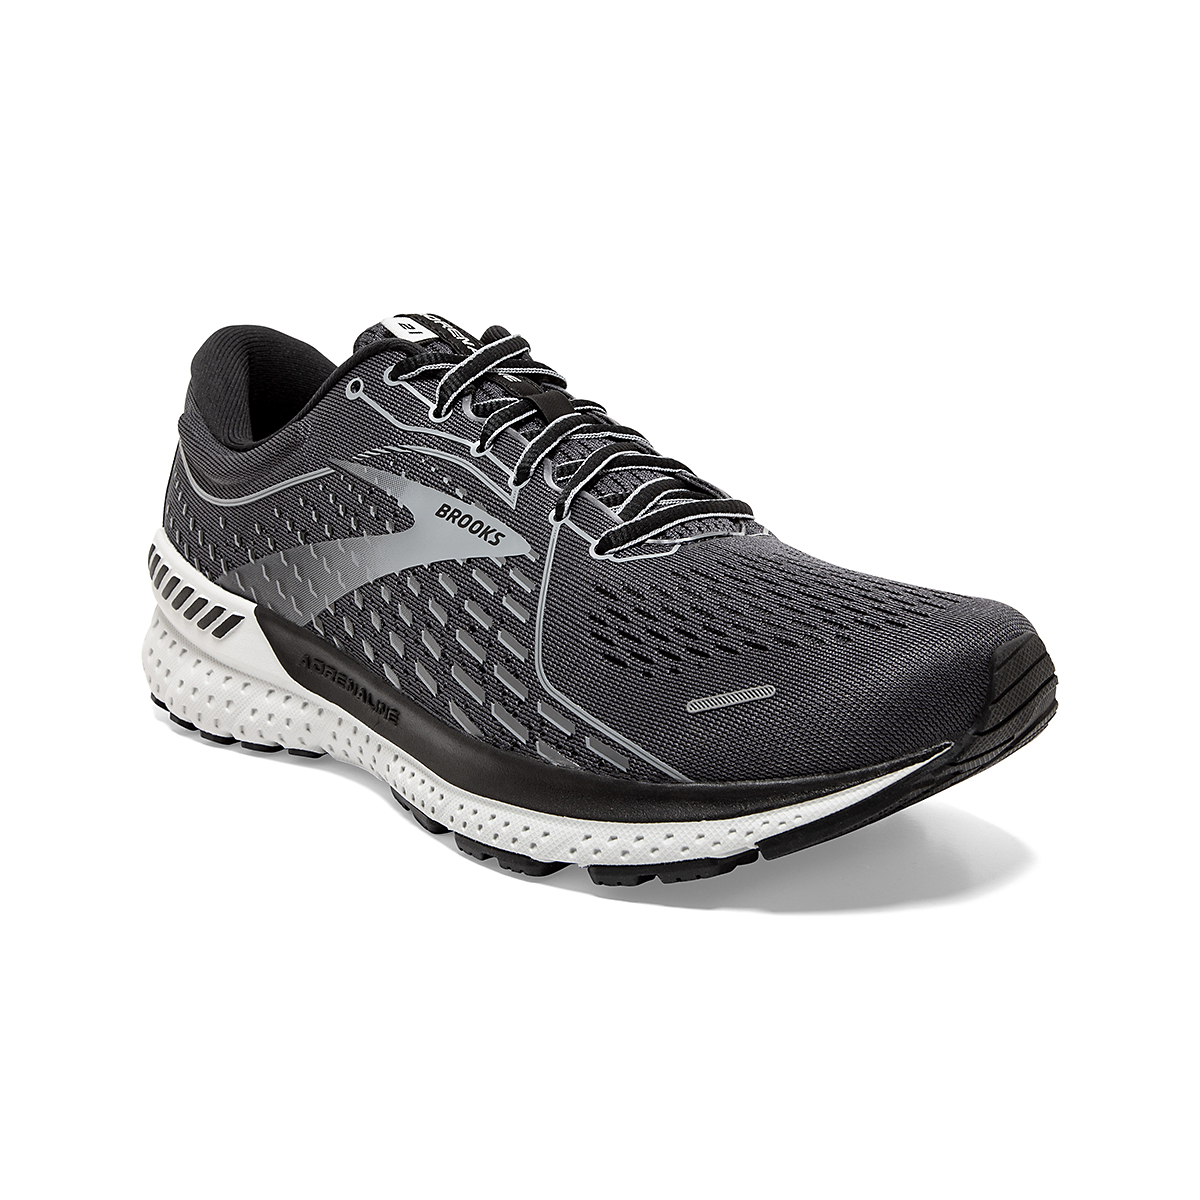 Men's Brooks Adrenaline GTS 21 Running Shoe - Color: Blackened Pearl - Size: 7 - Width: Regular, Blackened Pearl, large, image 3